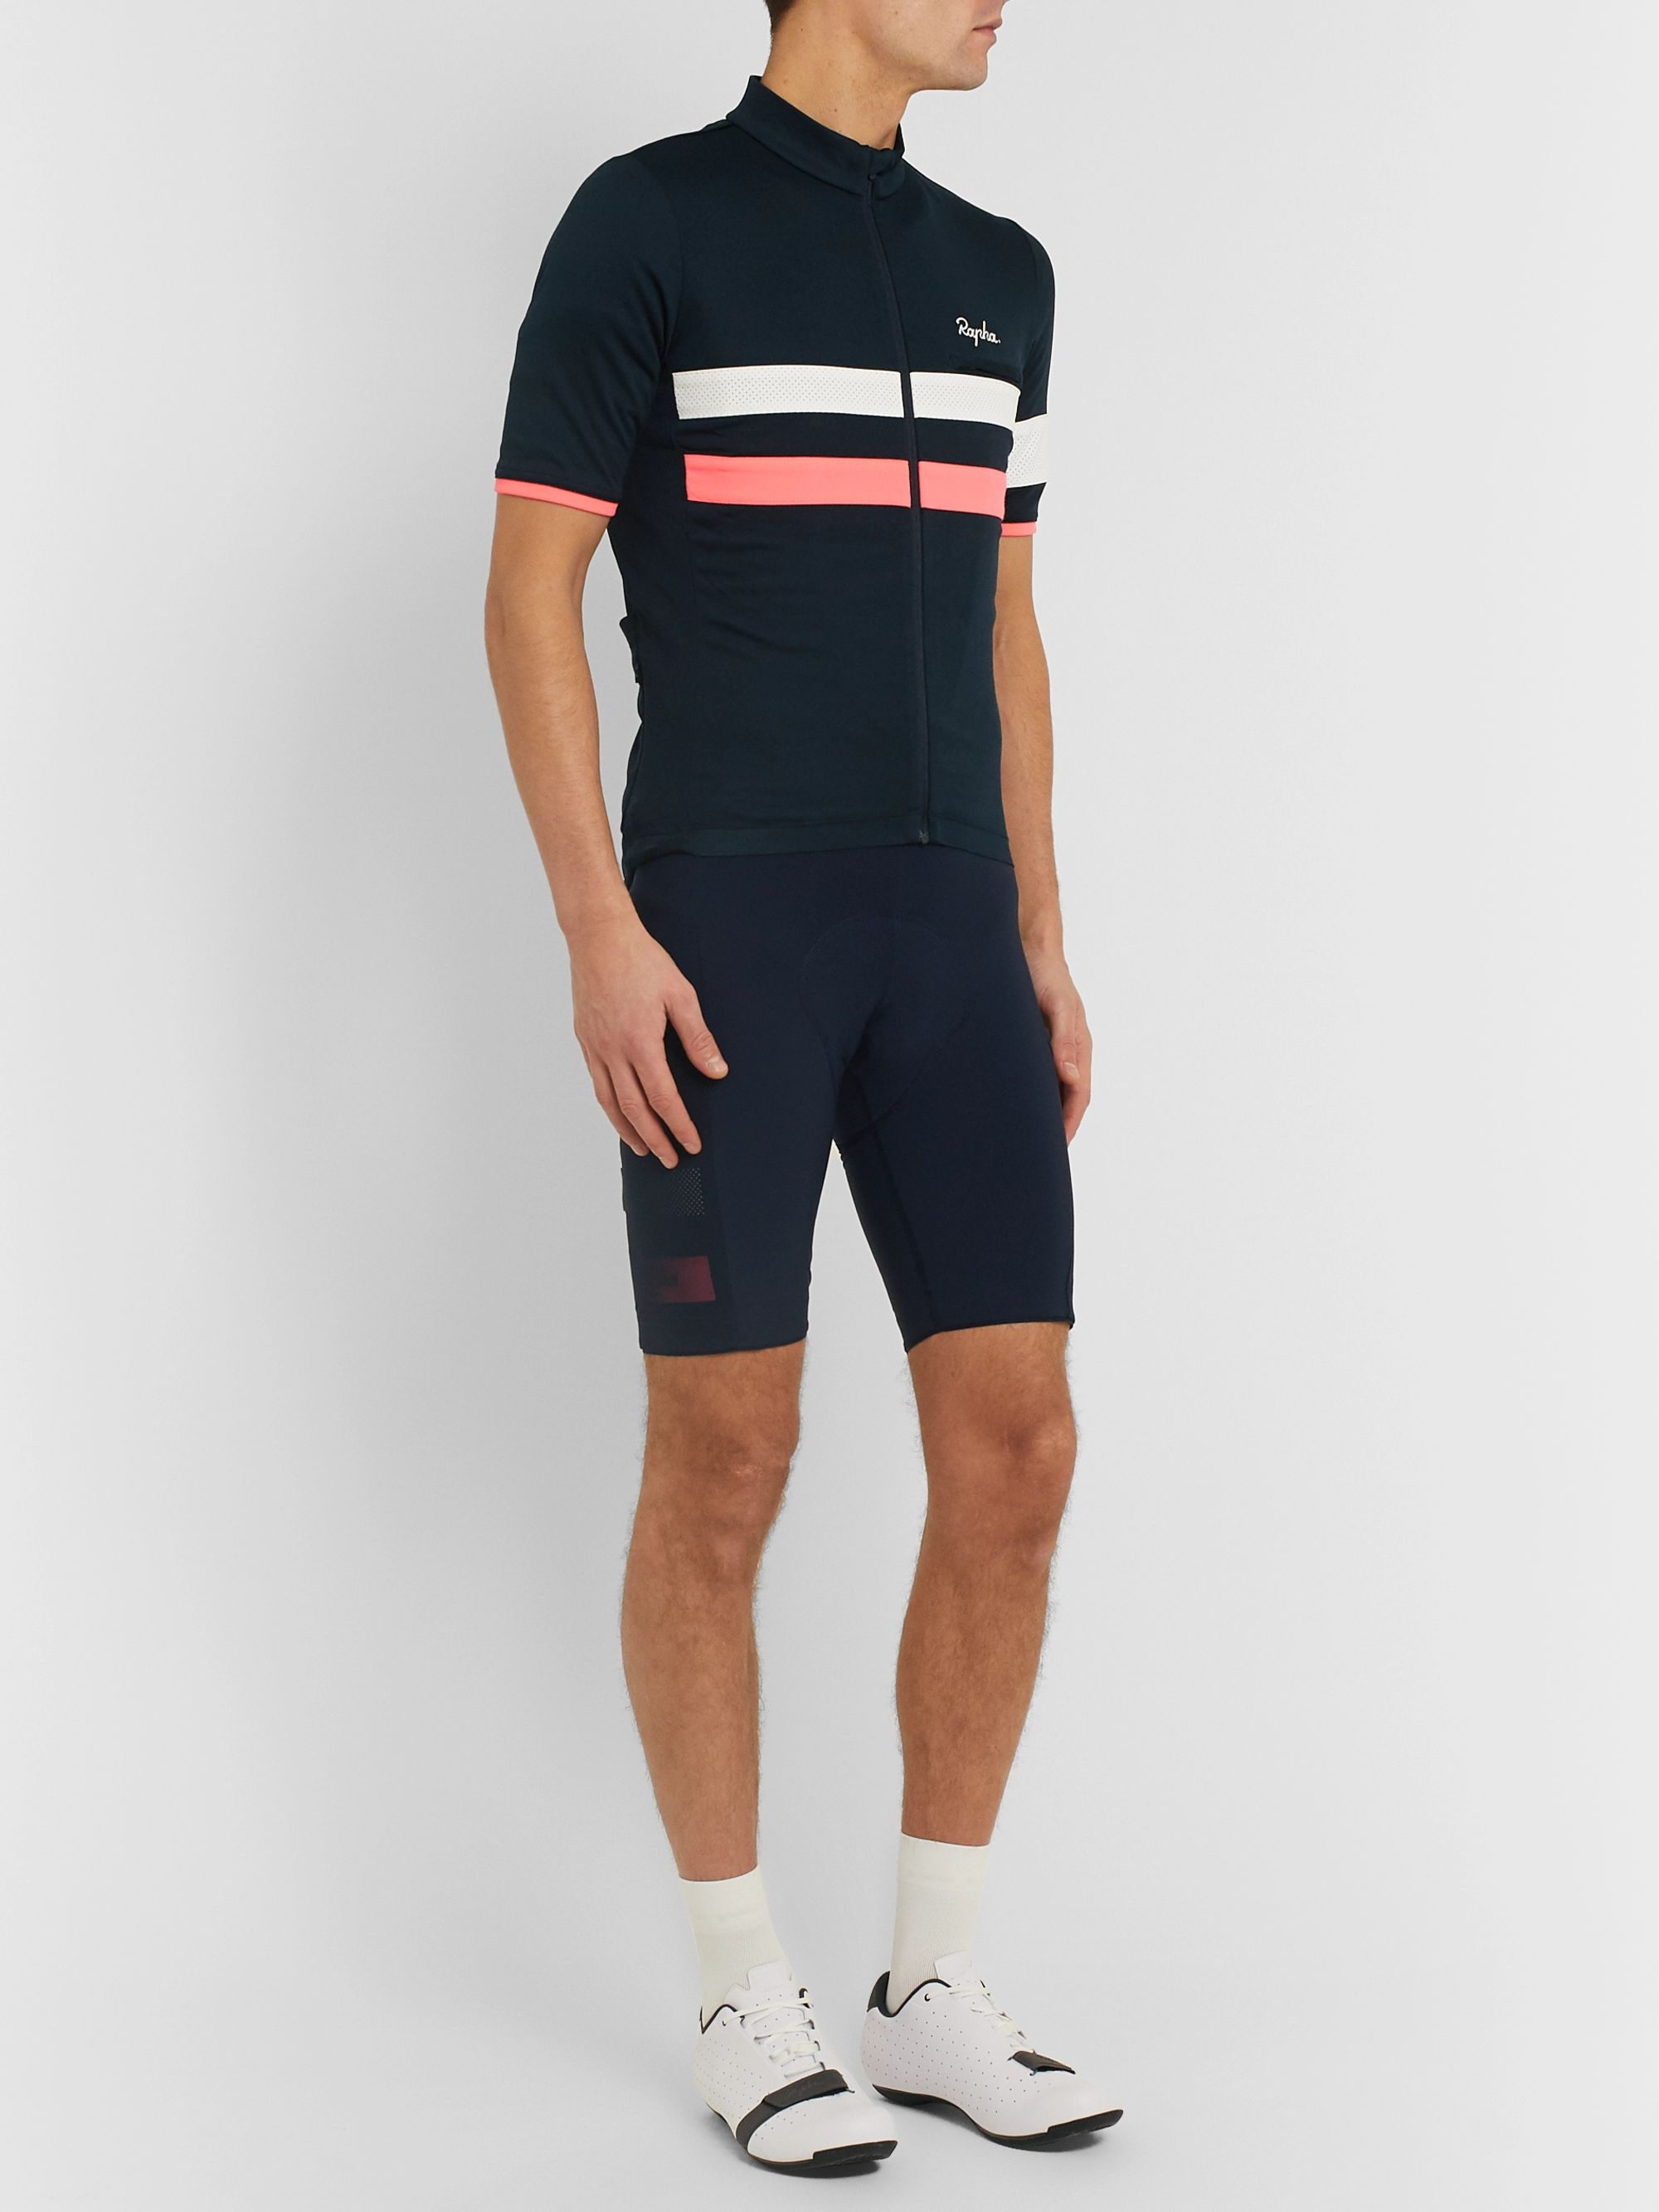 Rapha Cargo Stretch Cycling Bib Shorts